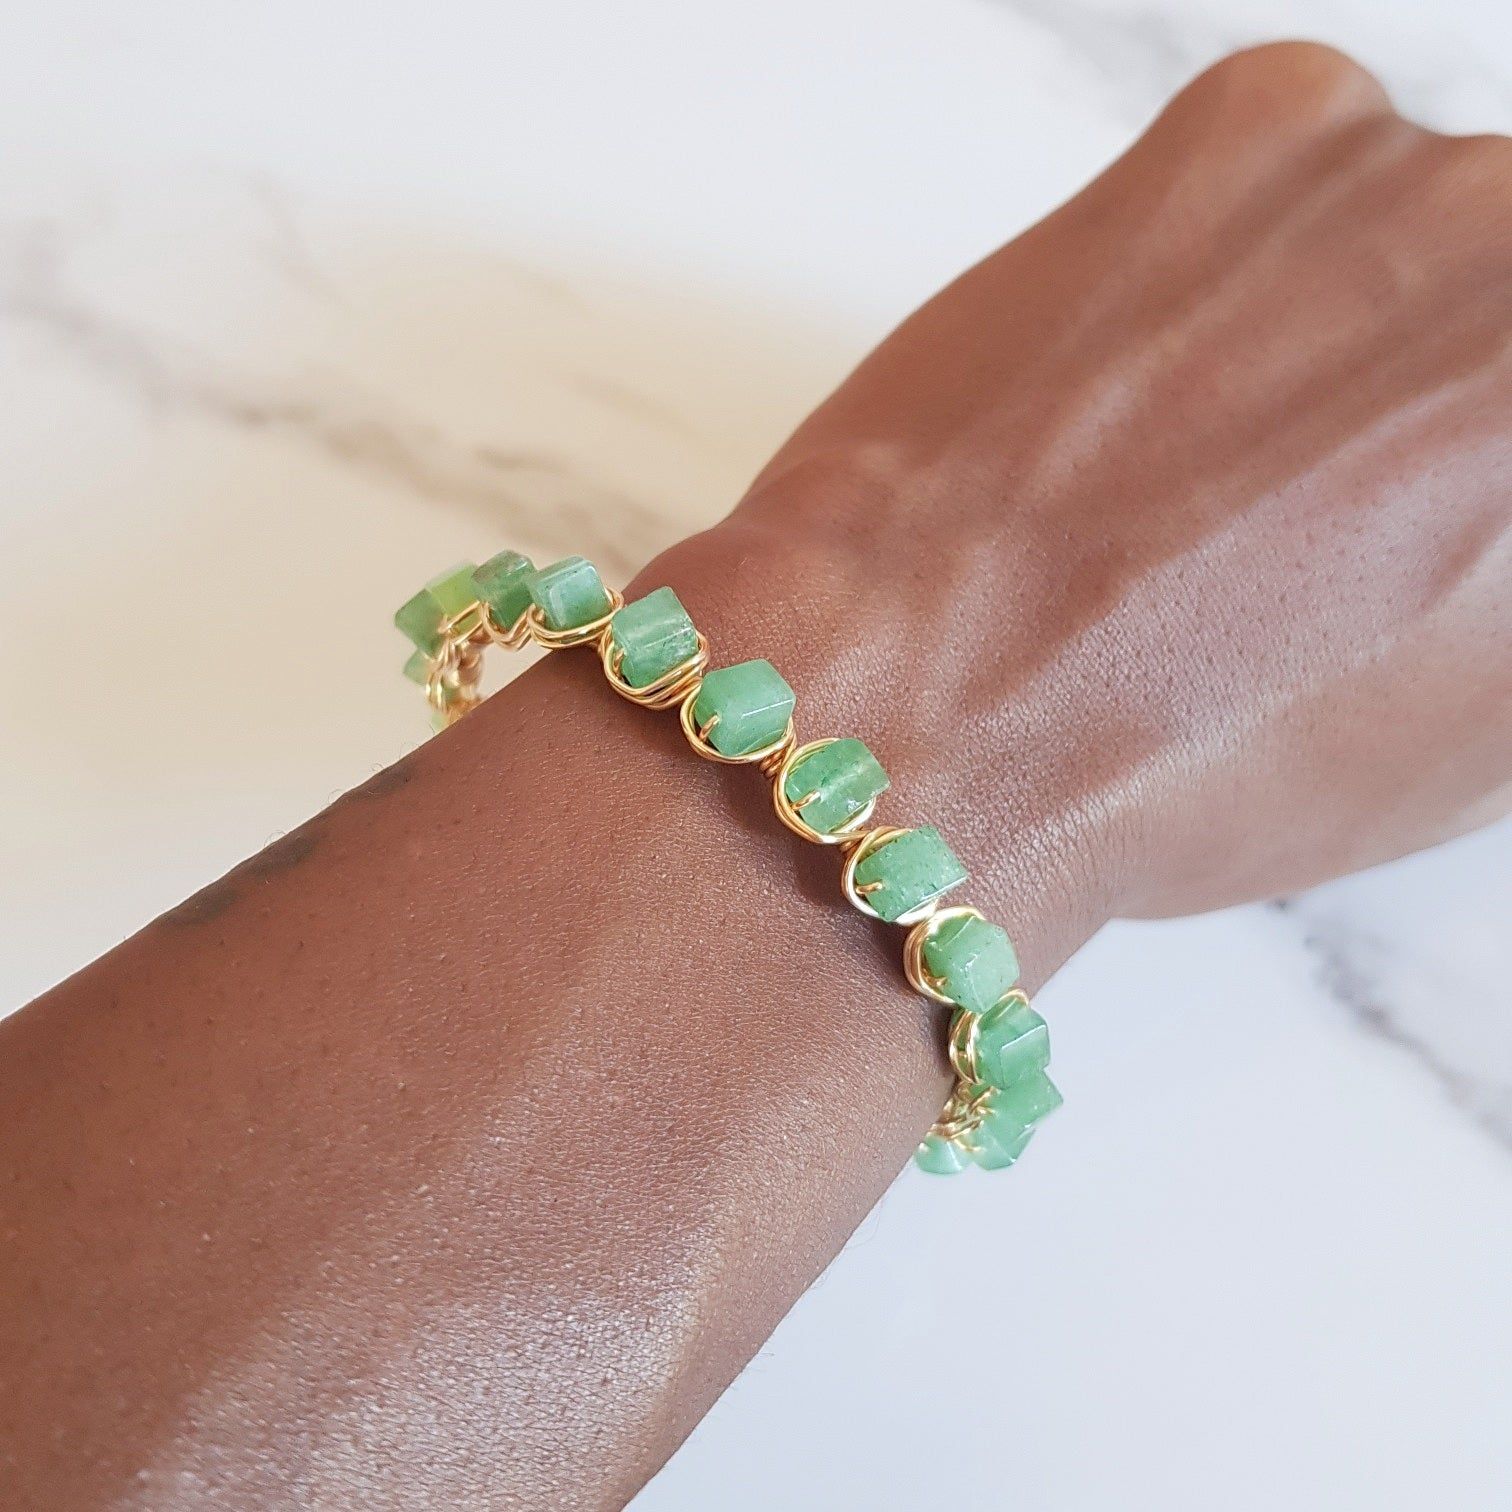 Vintage Mermaid Cuff -Green Aventurine (OAK)